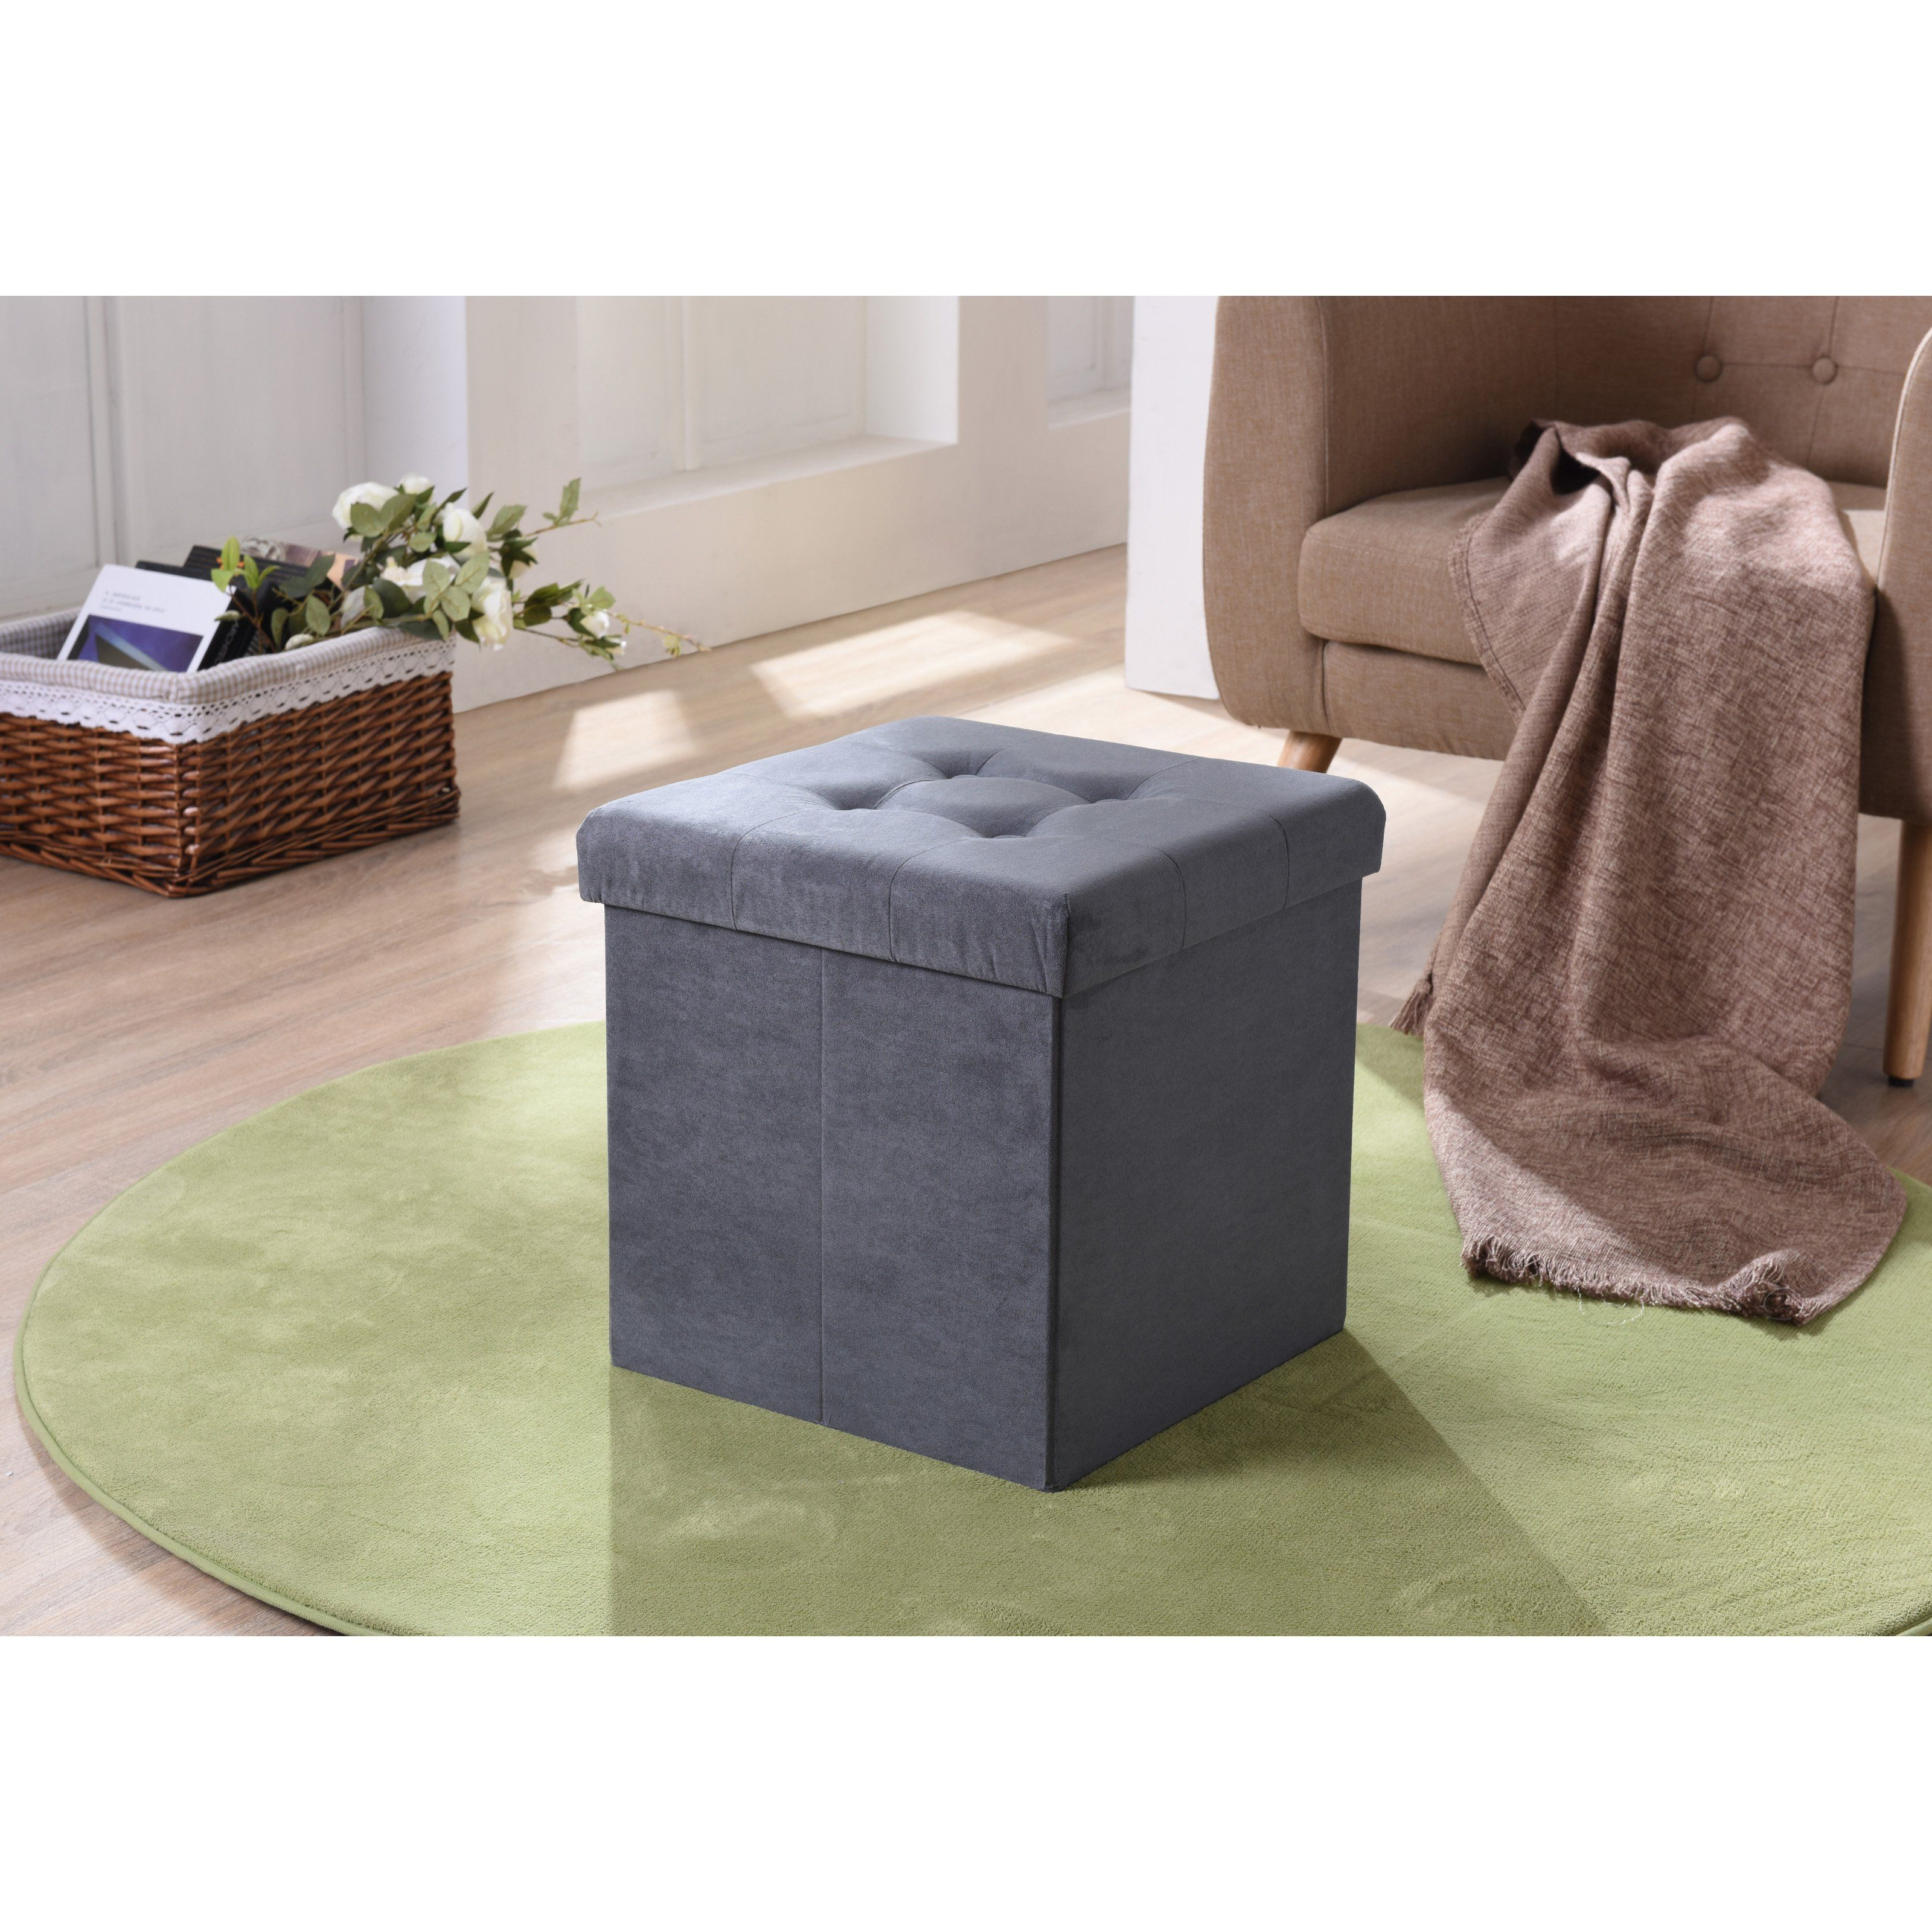 Magnificent Hodedah Imports Suede Foldable Storage Ottoman Hi1250 Grey Alphanode Cool Chair Designs And Ideas Alphanodeonline